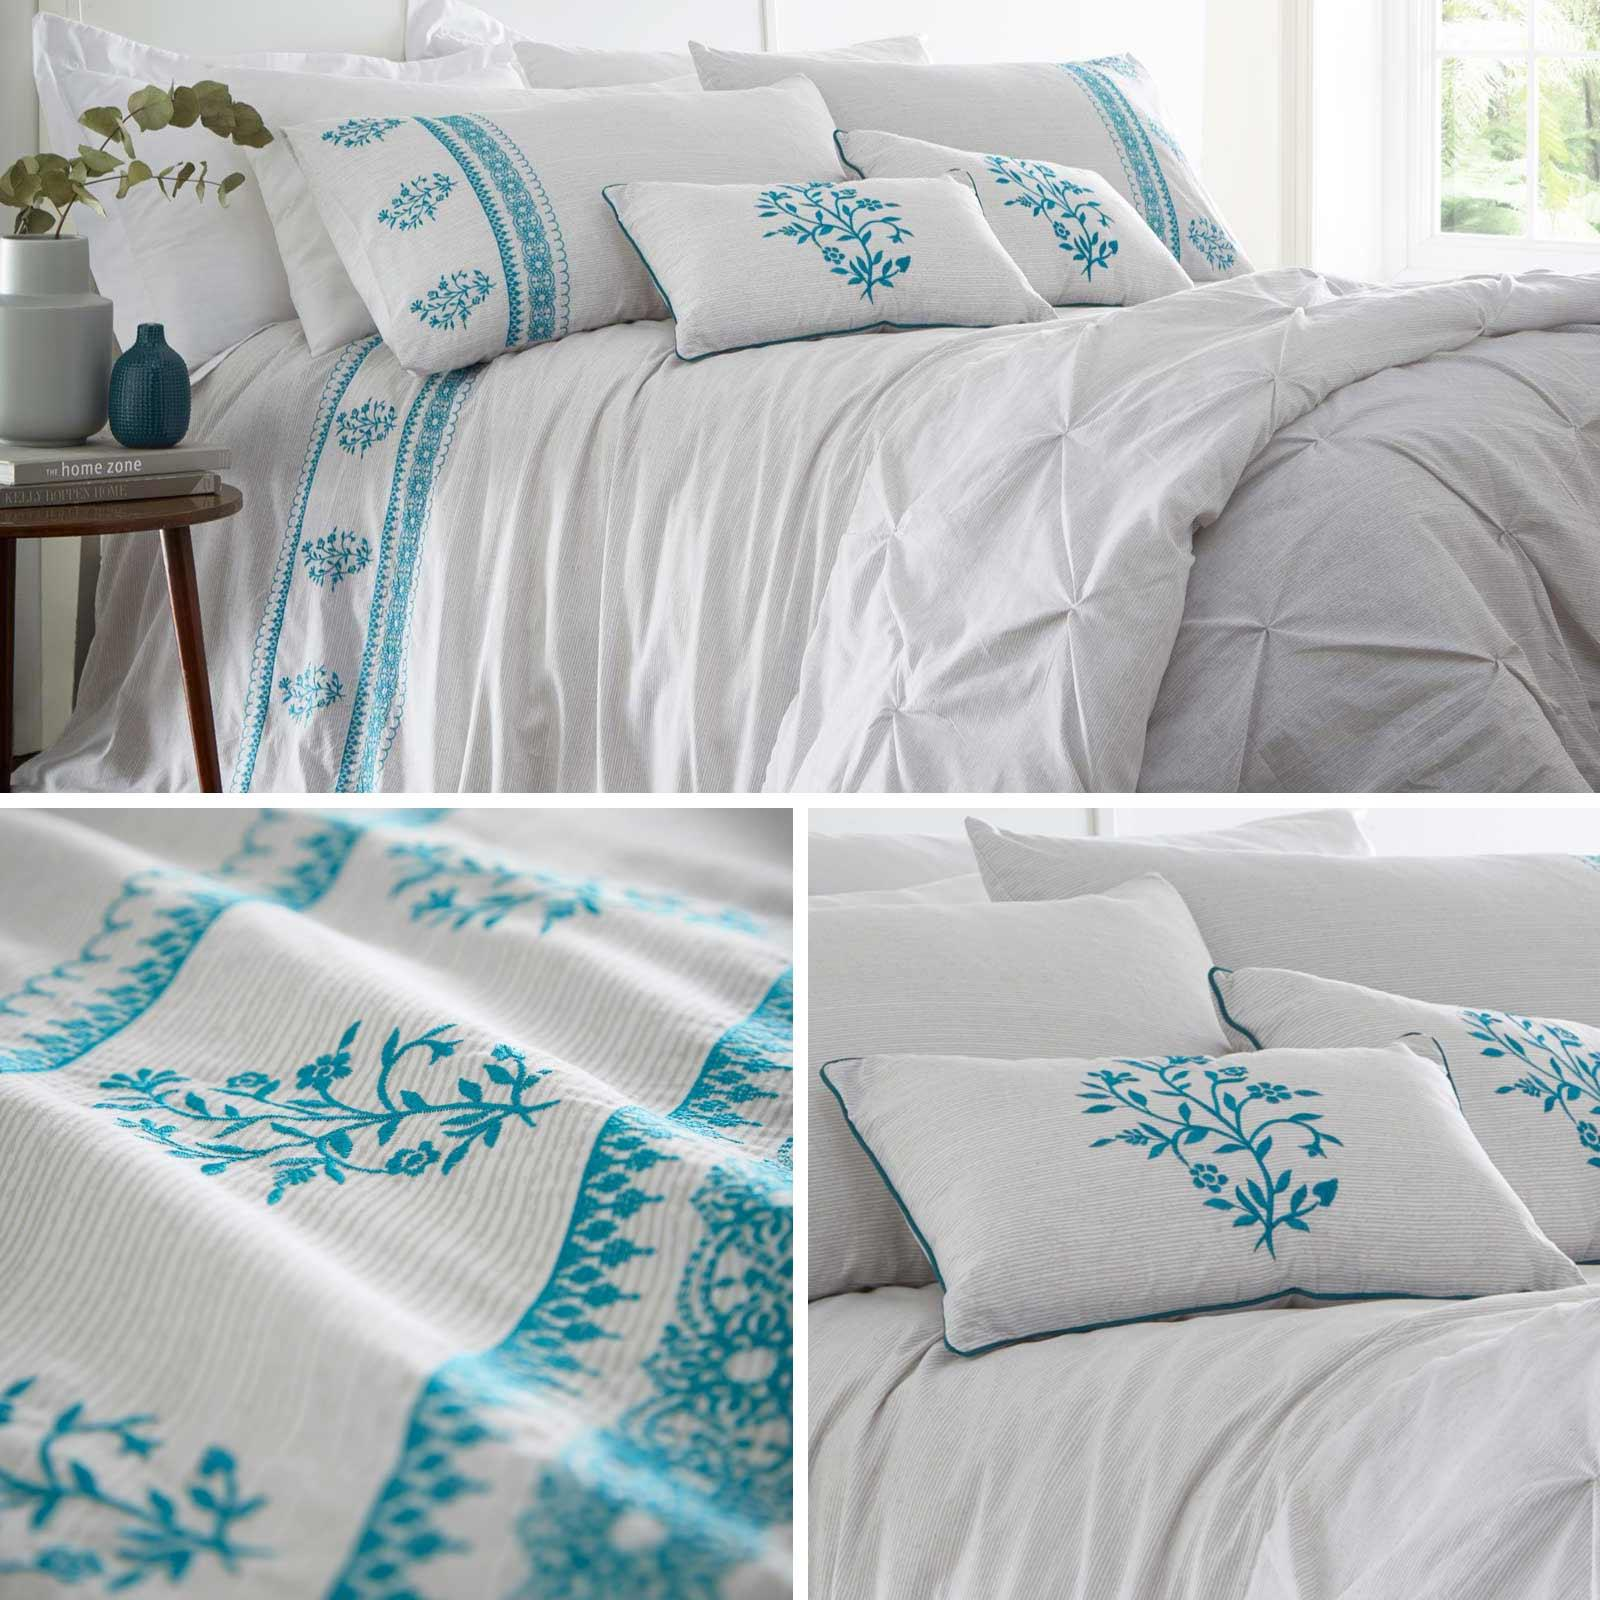 Teal Duvet Covers Floral Embroidered Bohemian Grey Quilt Cover Bedding Sets Ebay